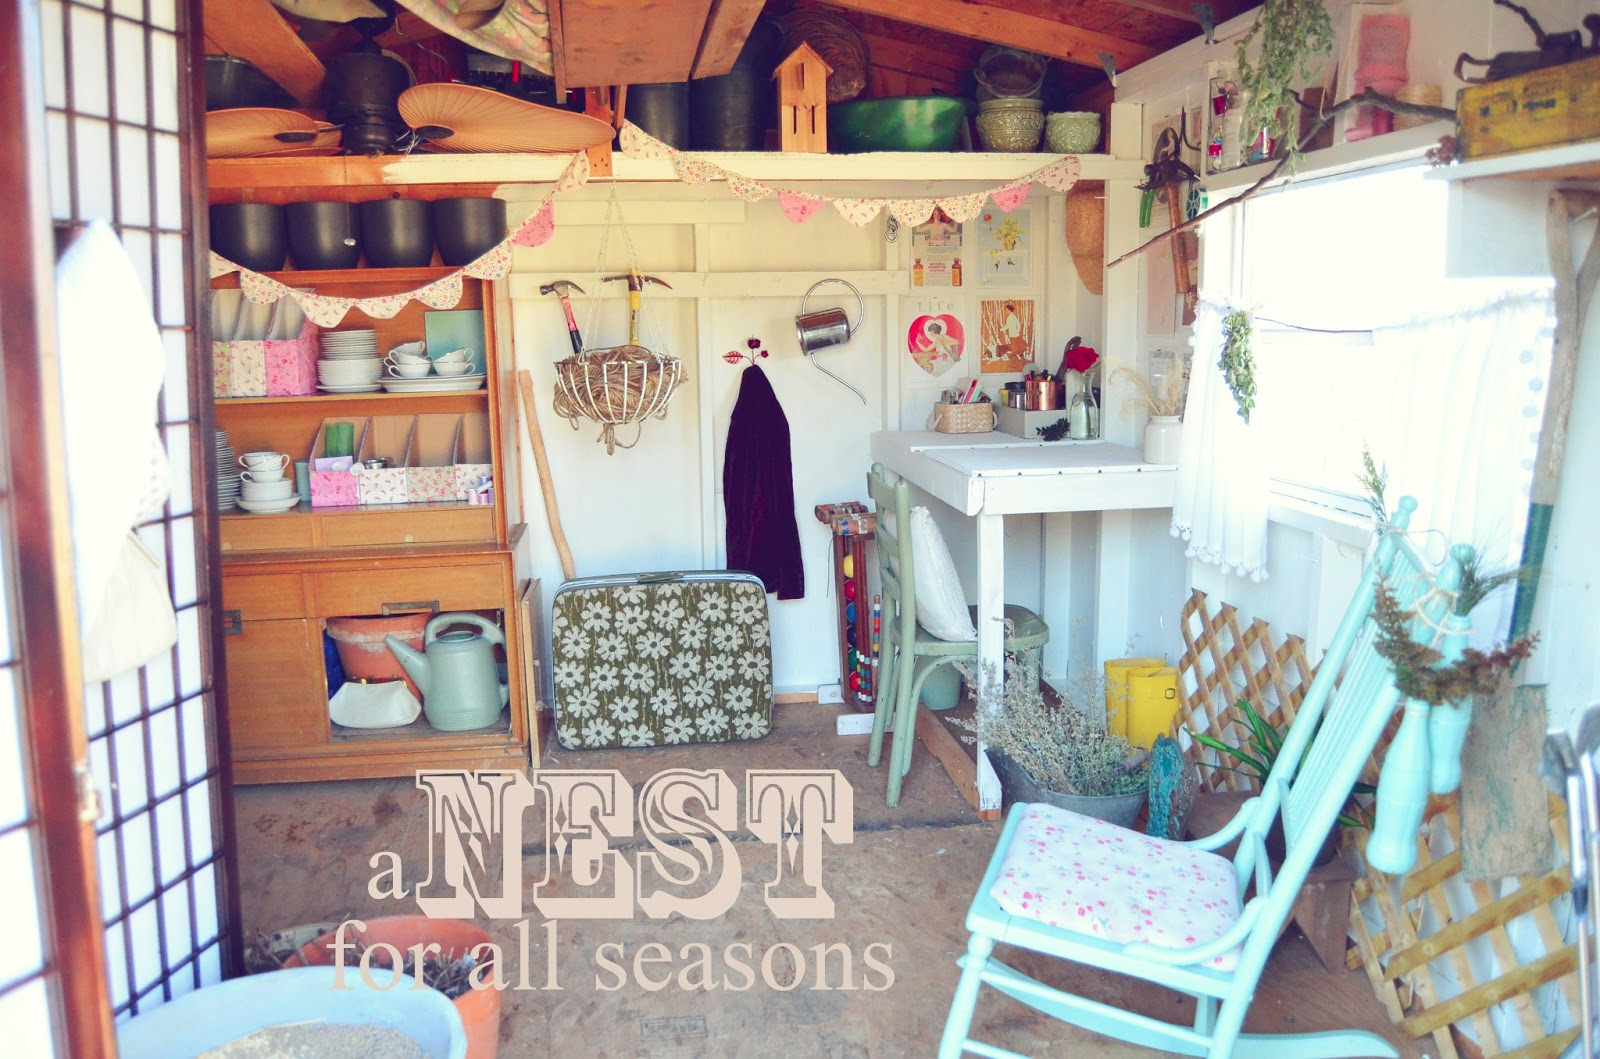 A Nest for All Seasons Home Tour